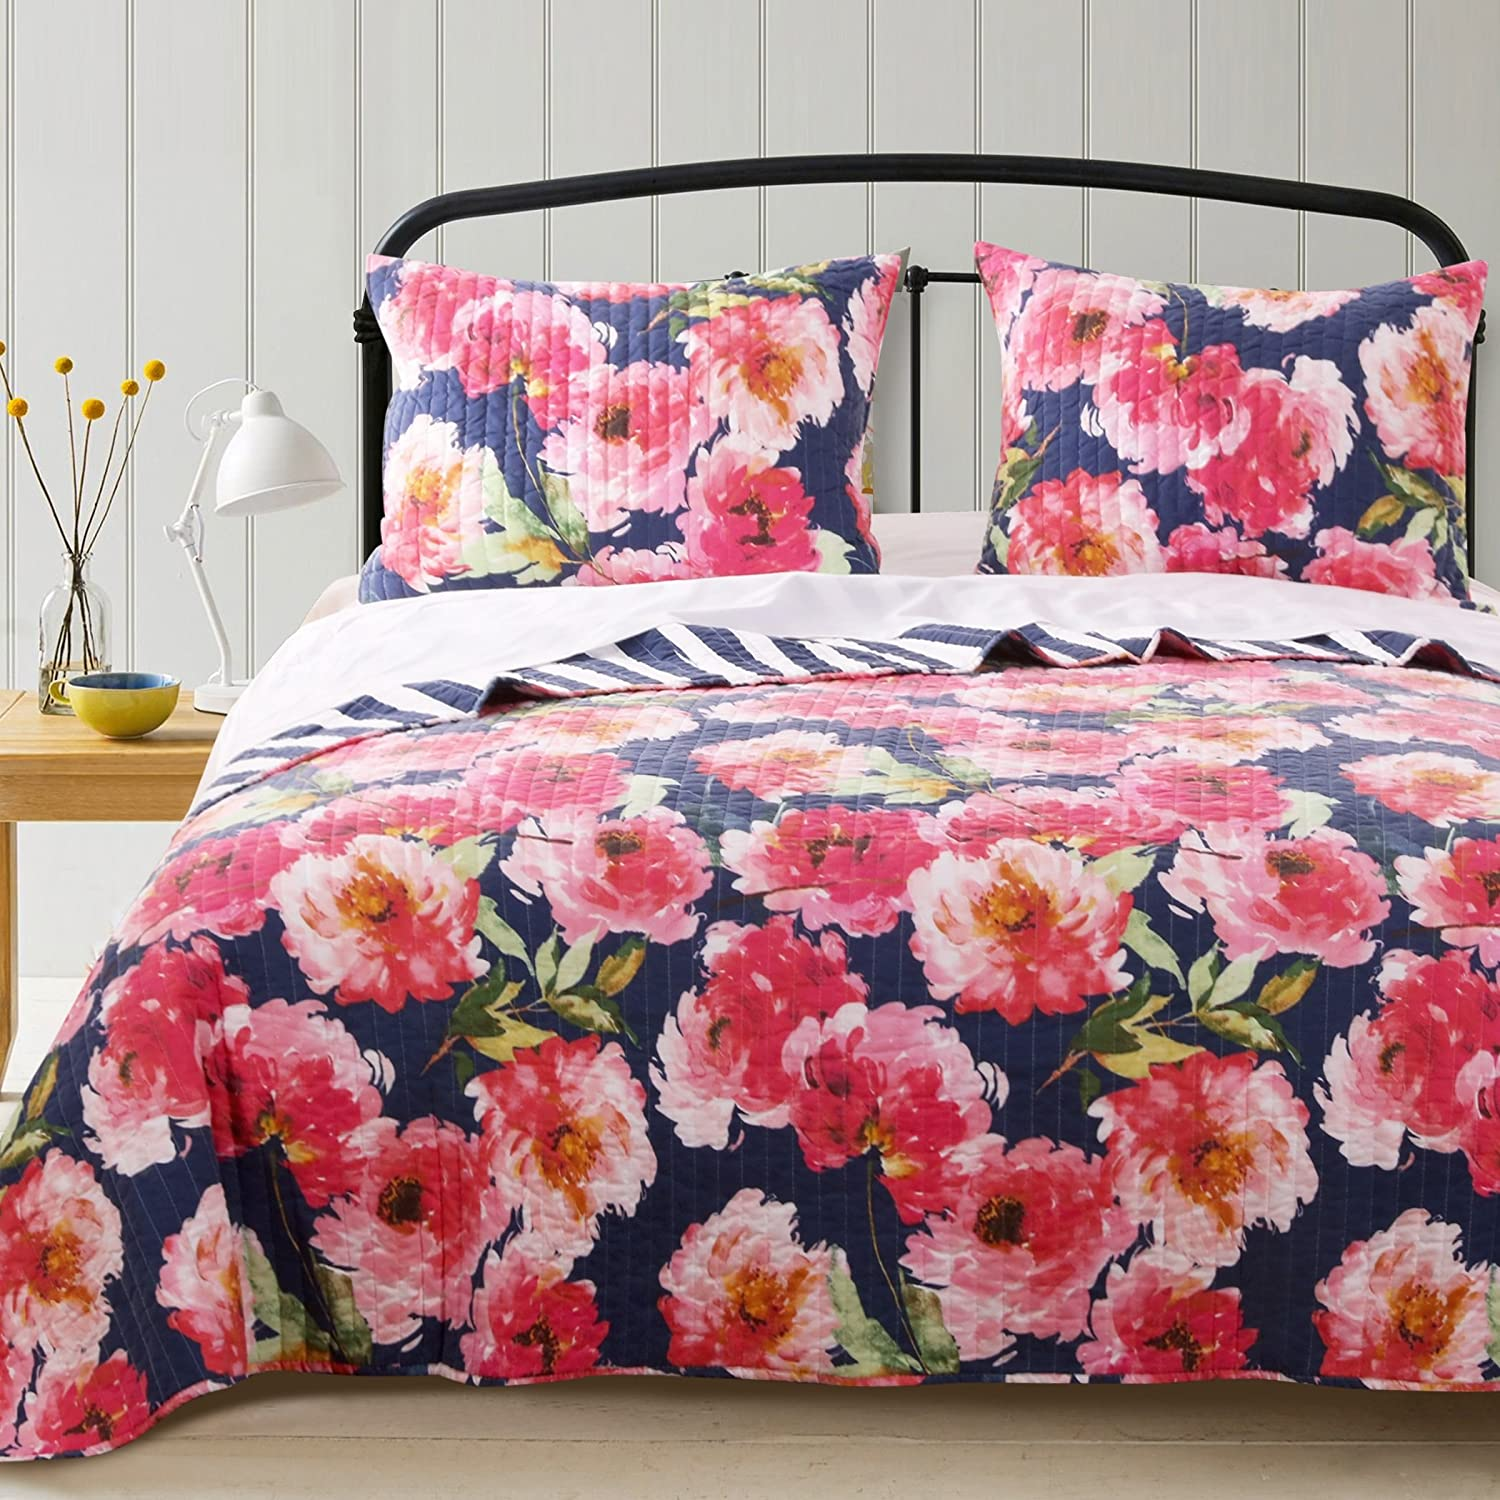 Barefoot Bungalow Peony Posy Bedding Set, Twin, Navy